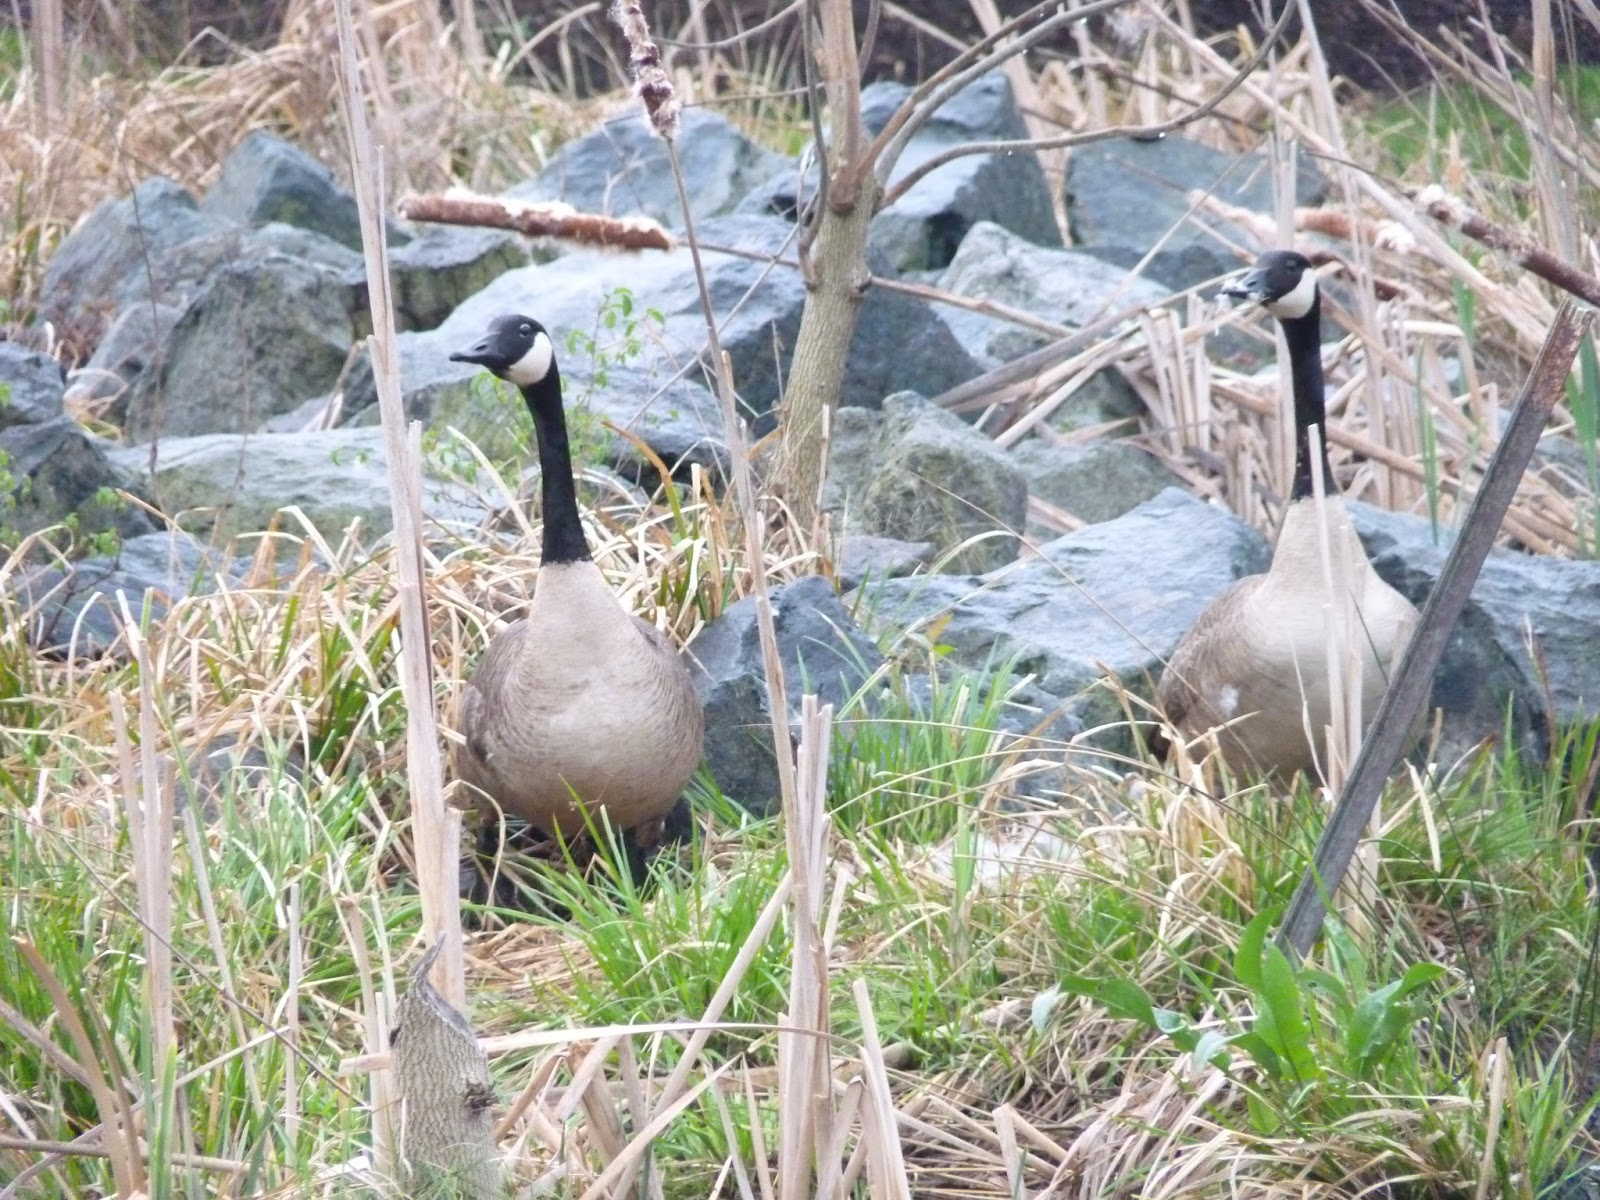 The Greenbelt April 2013 Gund Swan Princess Large Geese At Nest Site